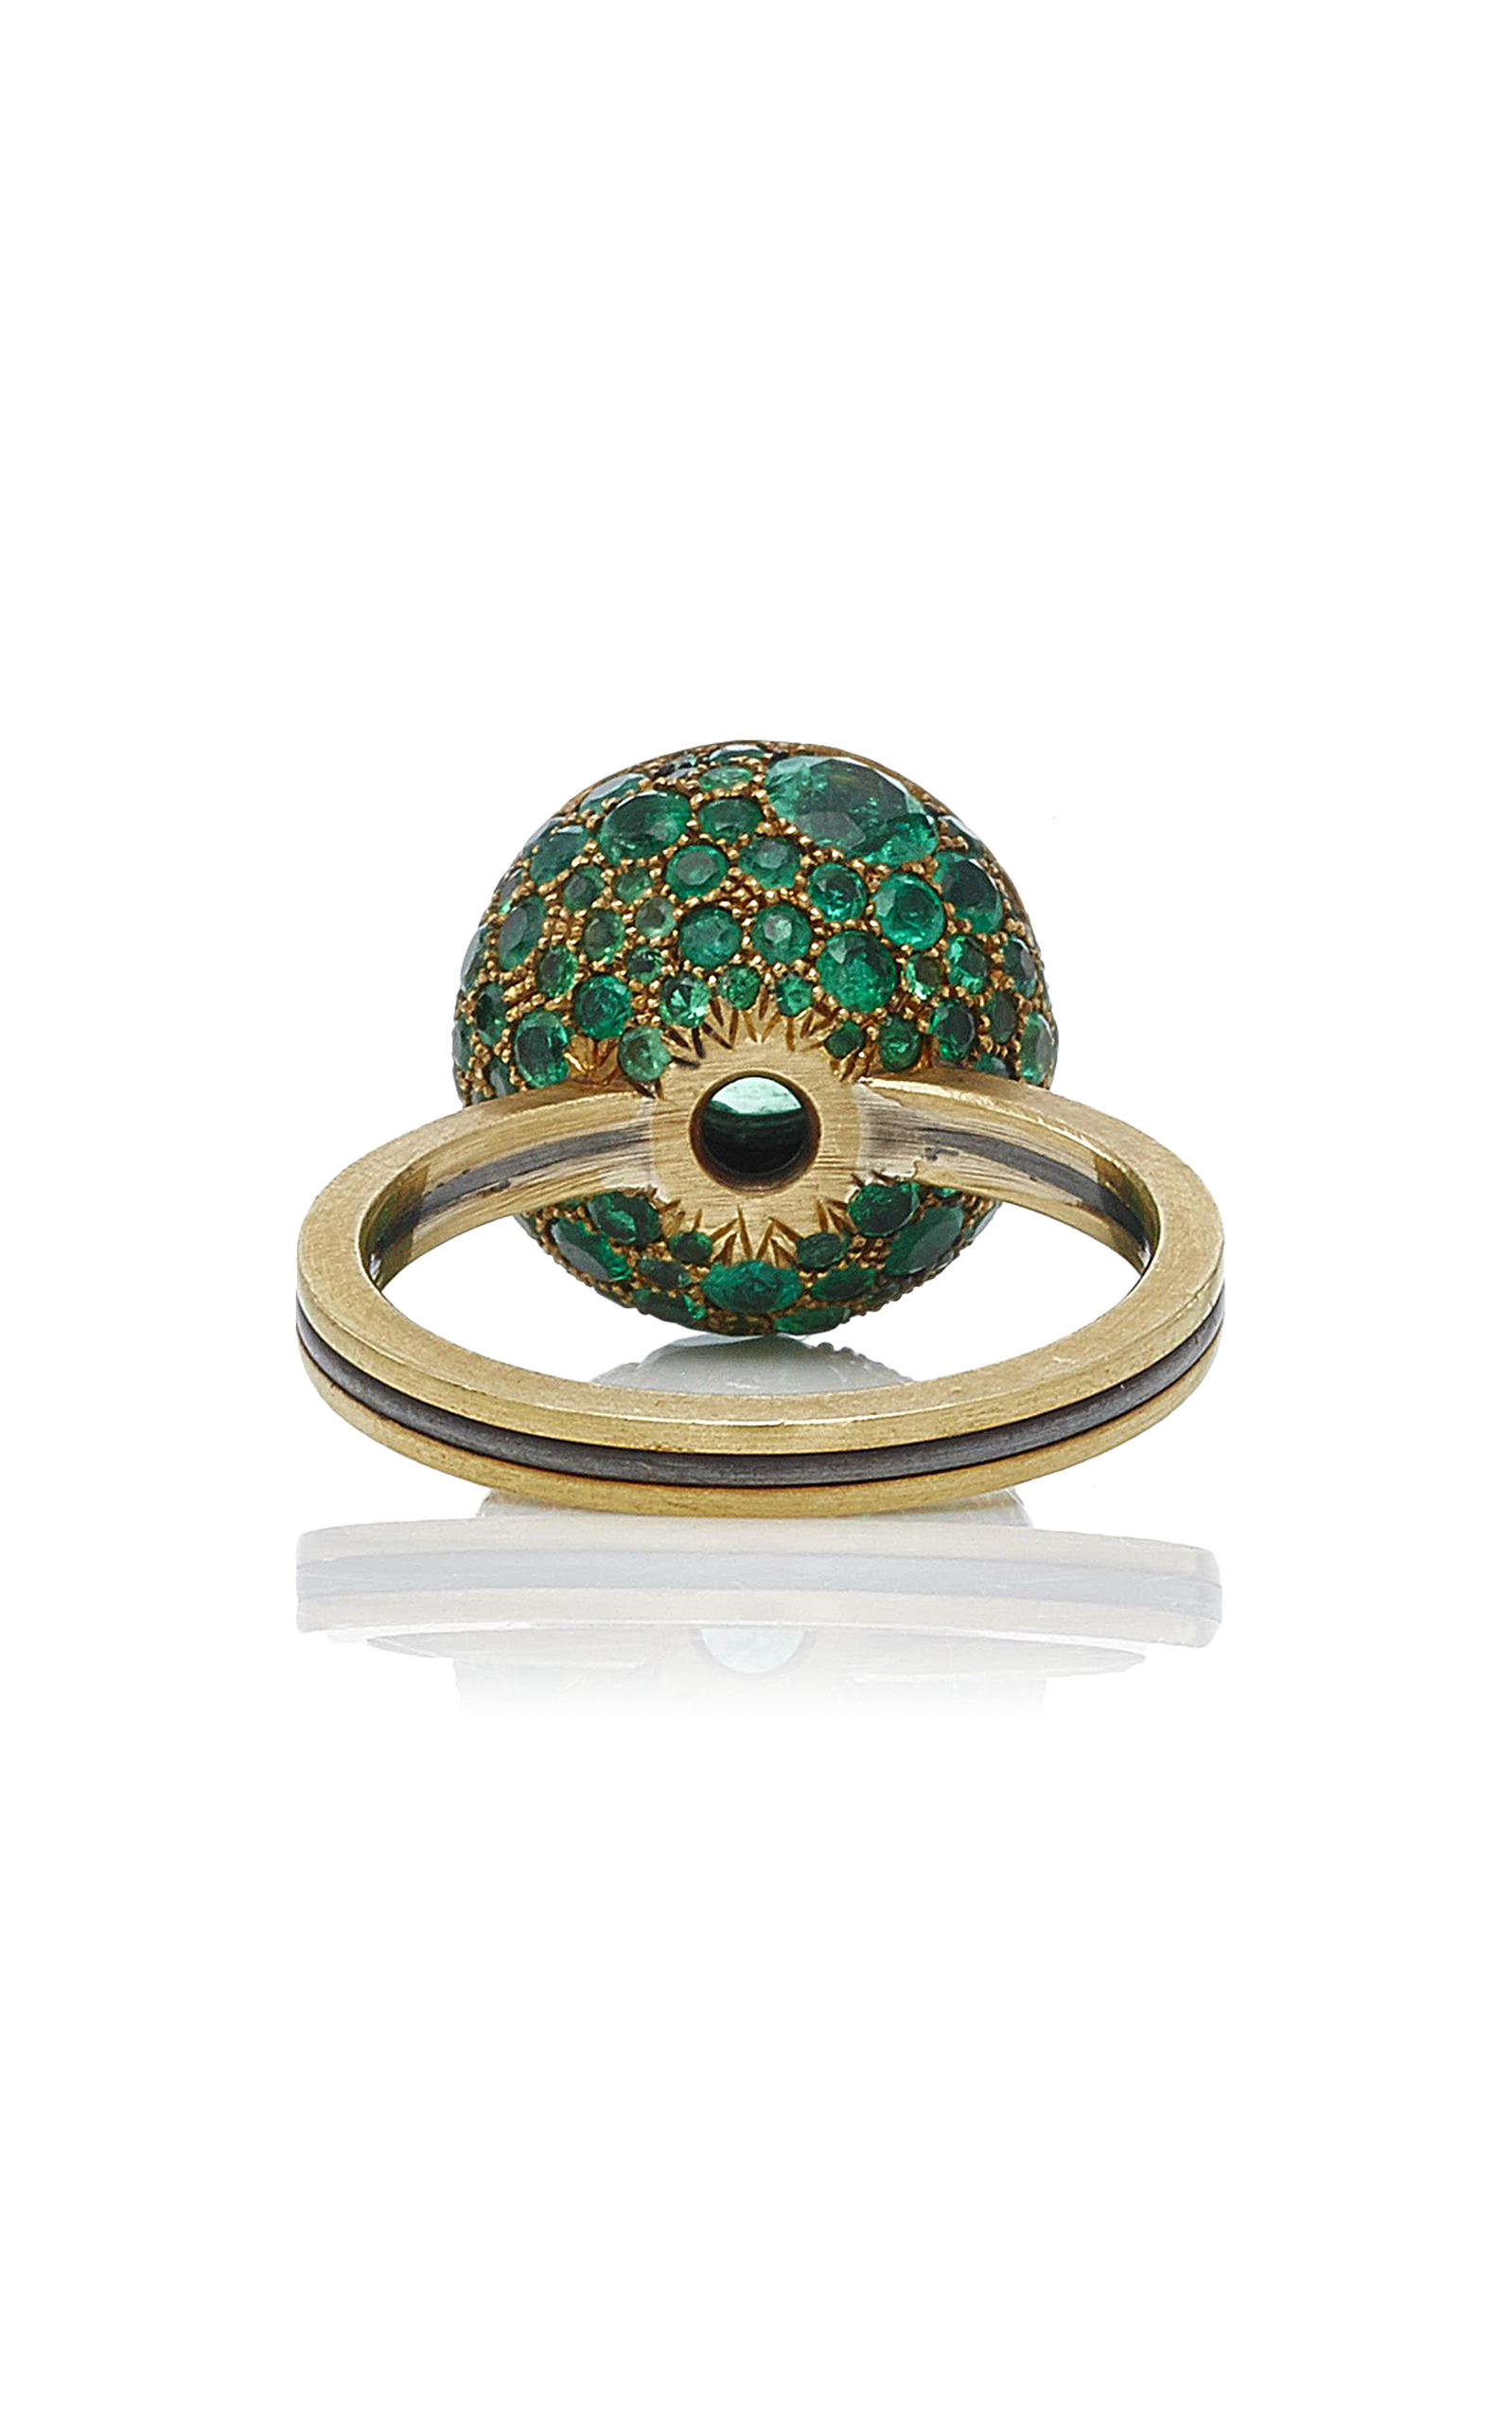 rings unique sarkisyan beautiful arman wedding bridal fashion green emerald hbz engagement emeral